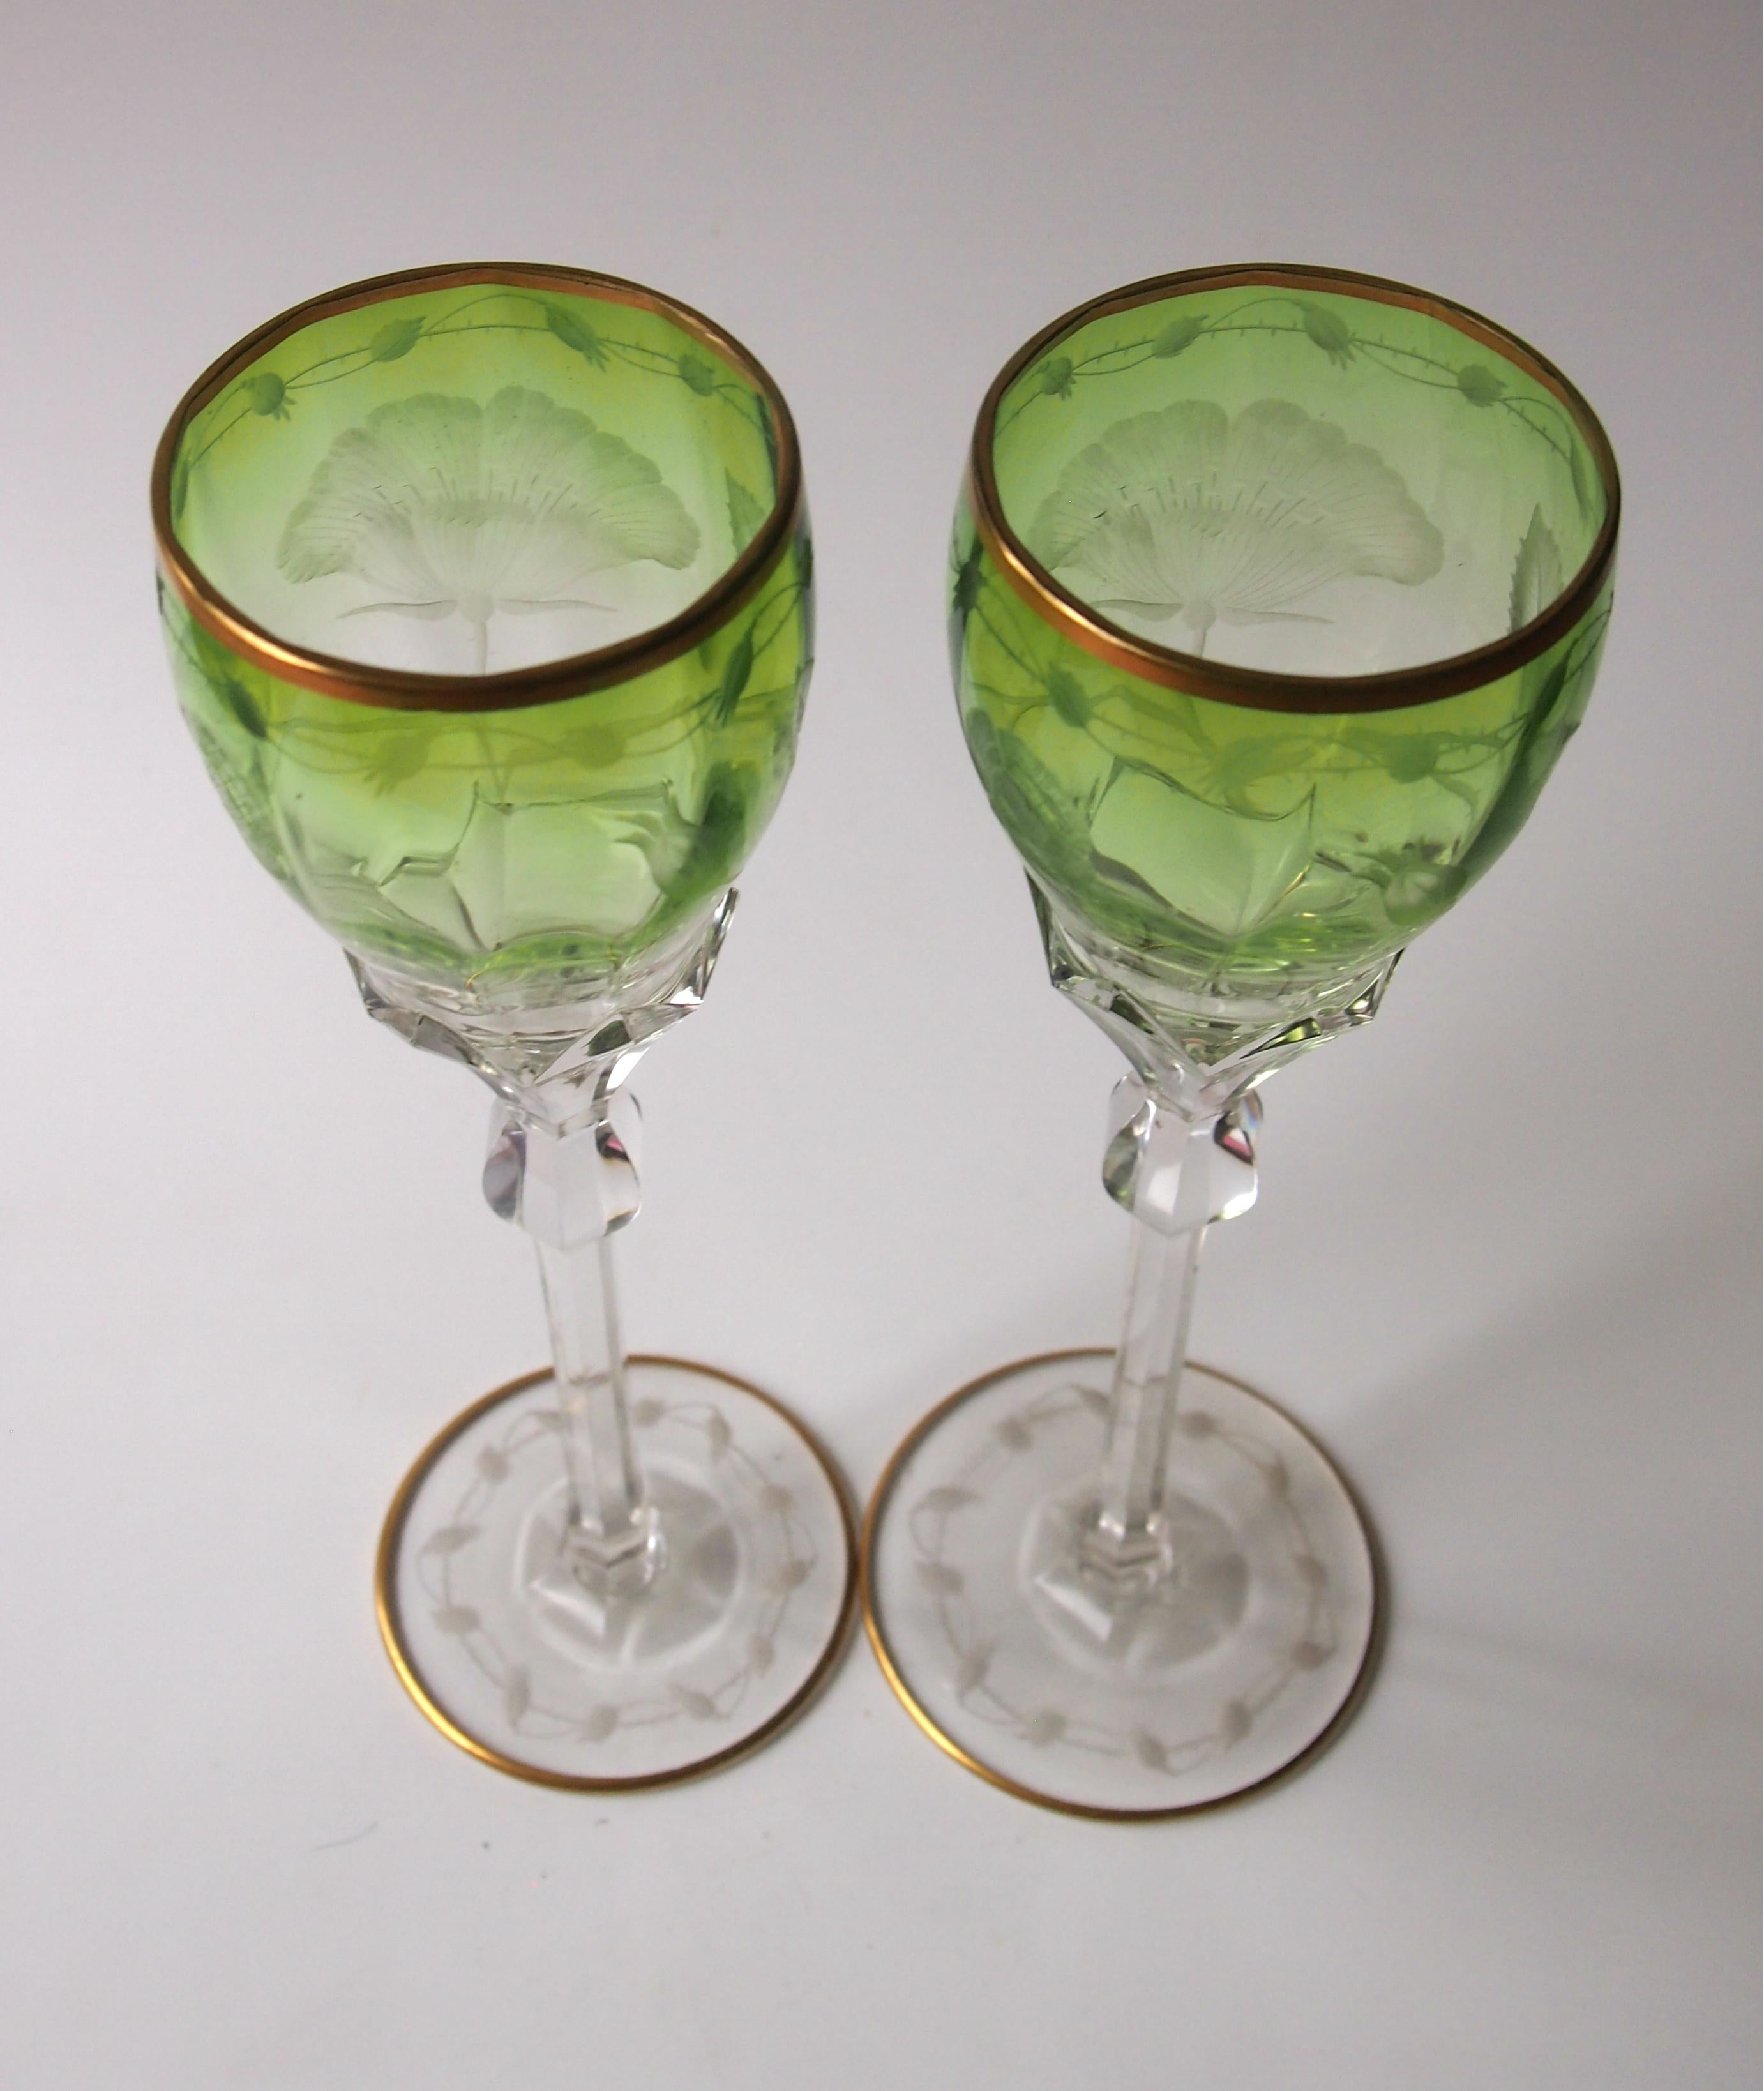 Strikingly Decorative And Unusual Harlequin Cut Crystal Wine Glass Signed Moser Art Glass